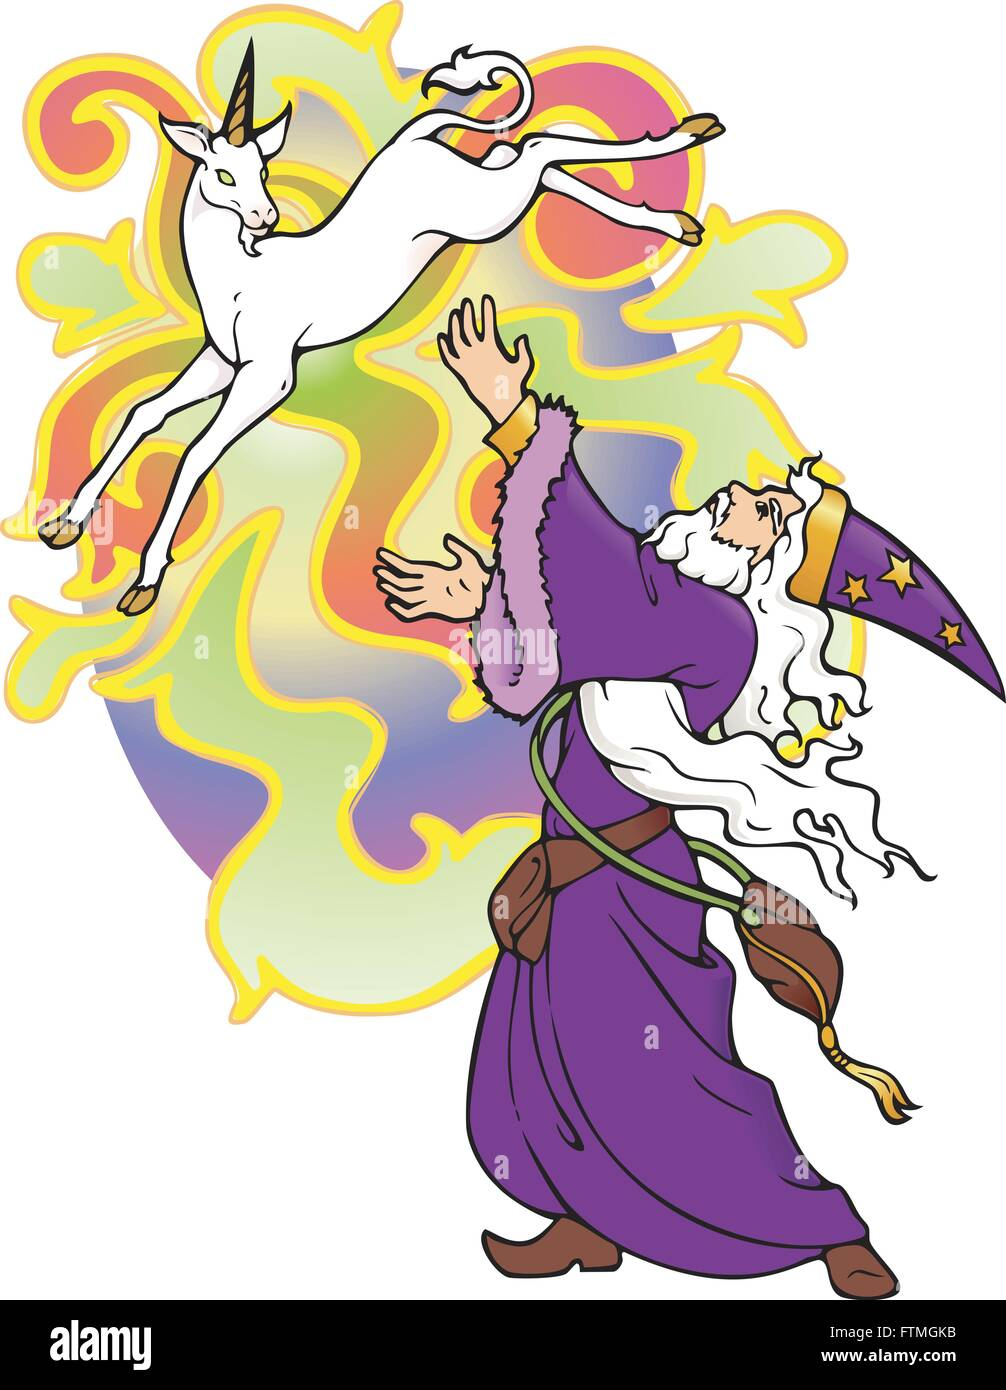 Wizard conjuring a unicorn, which doesn't want to stick around. - Stock Vector